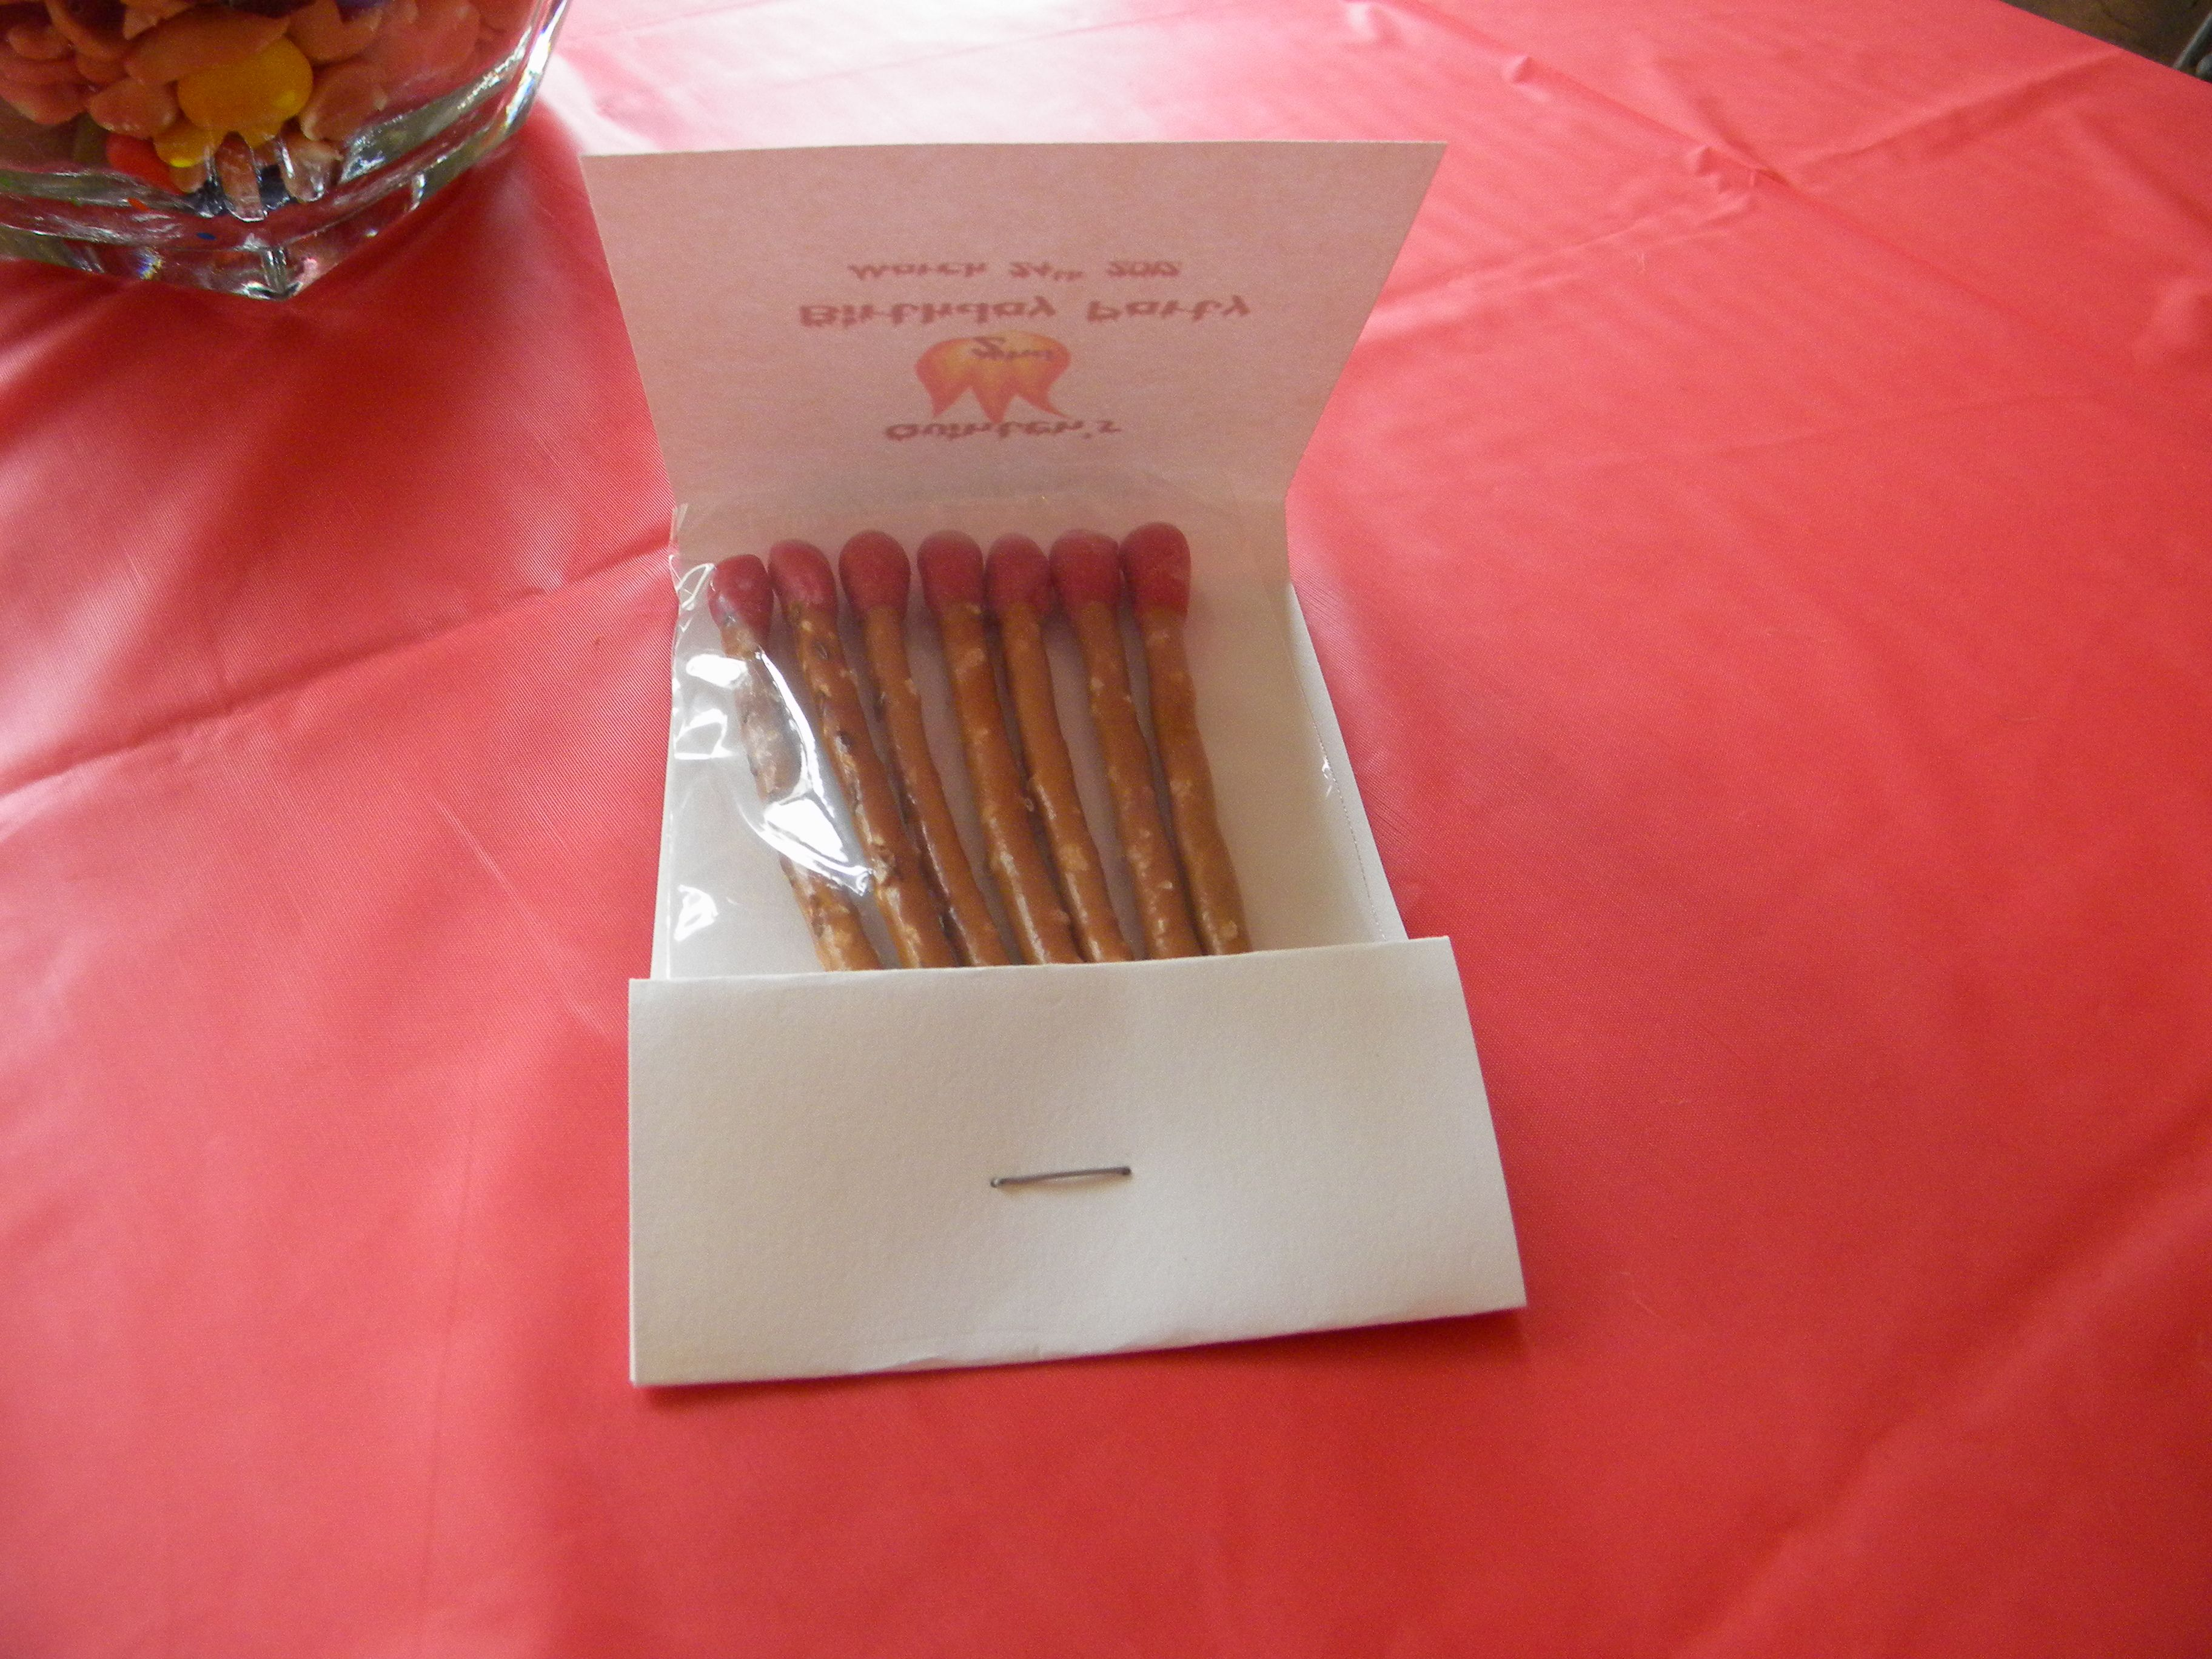 Party Favor Matchbook Made Out Of Card Stock With Pretzel